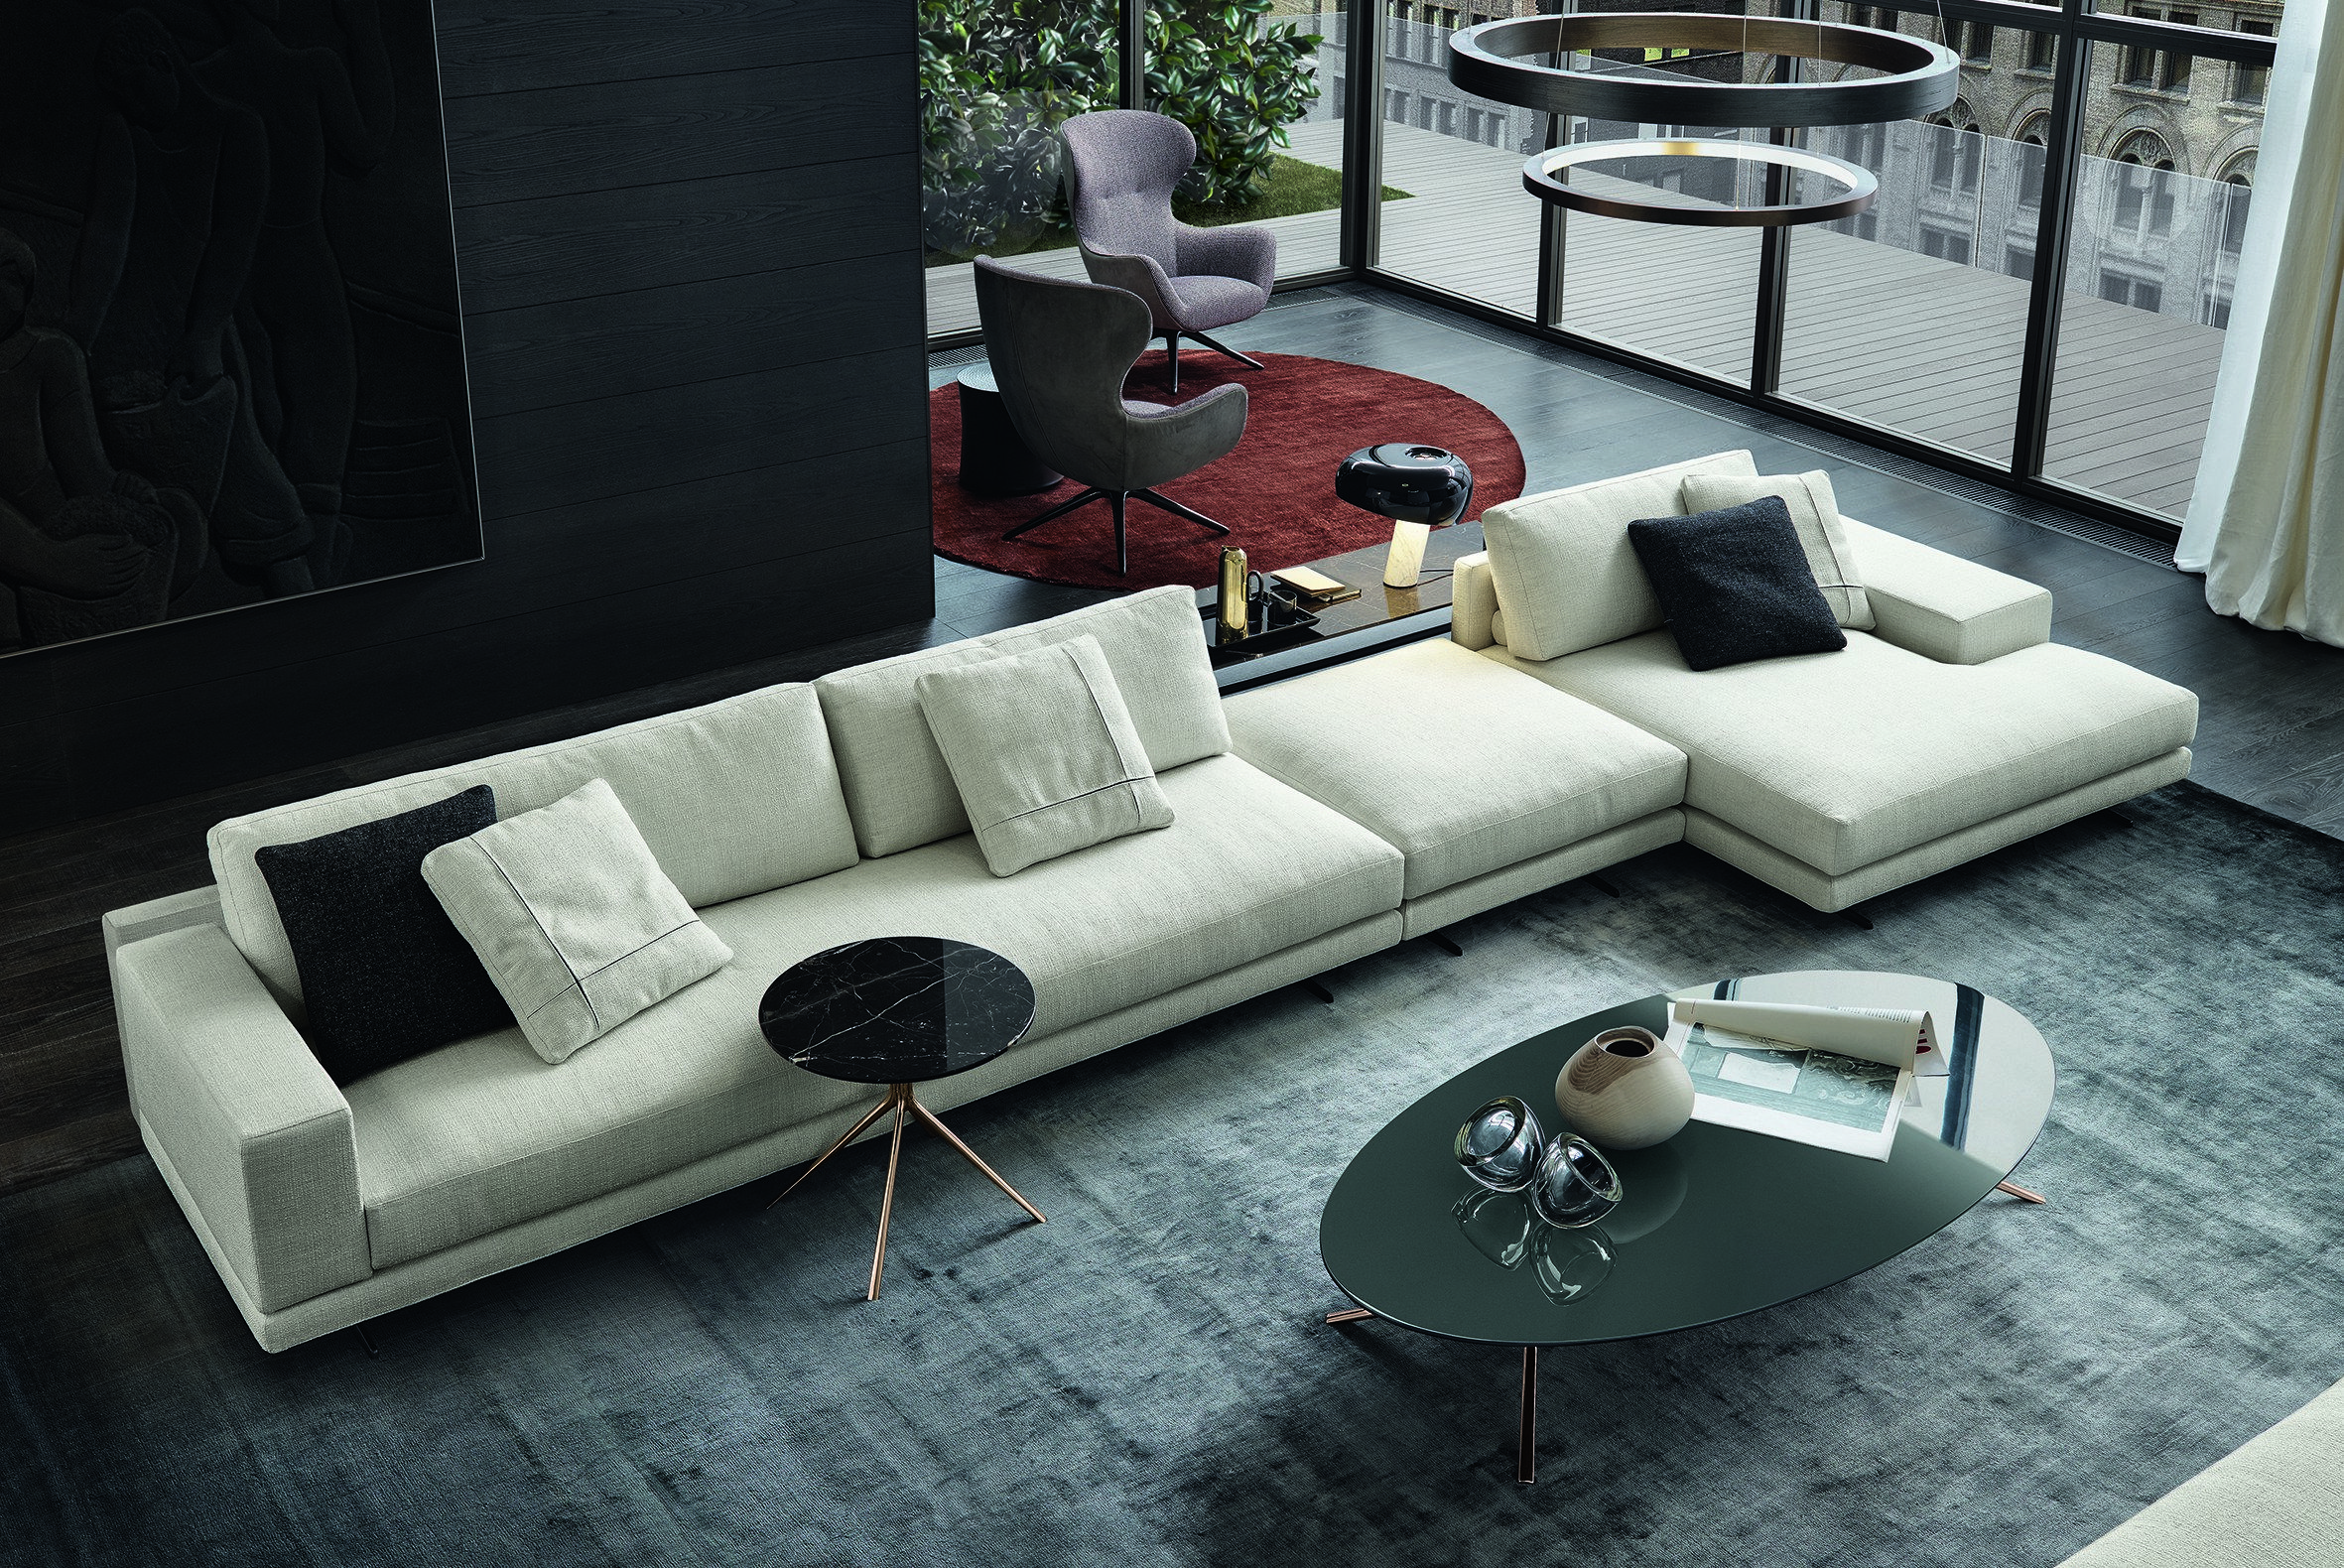 10 great modern sofas photos architectural digest